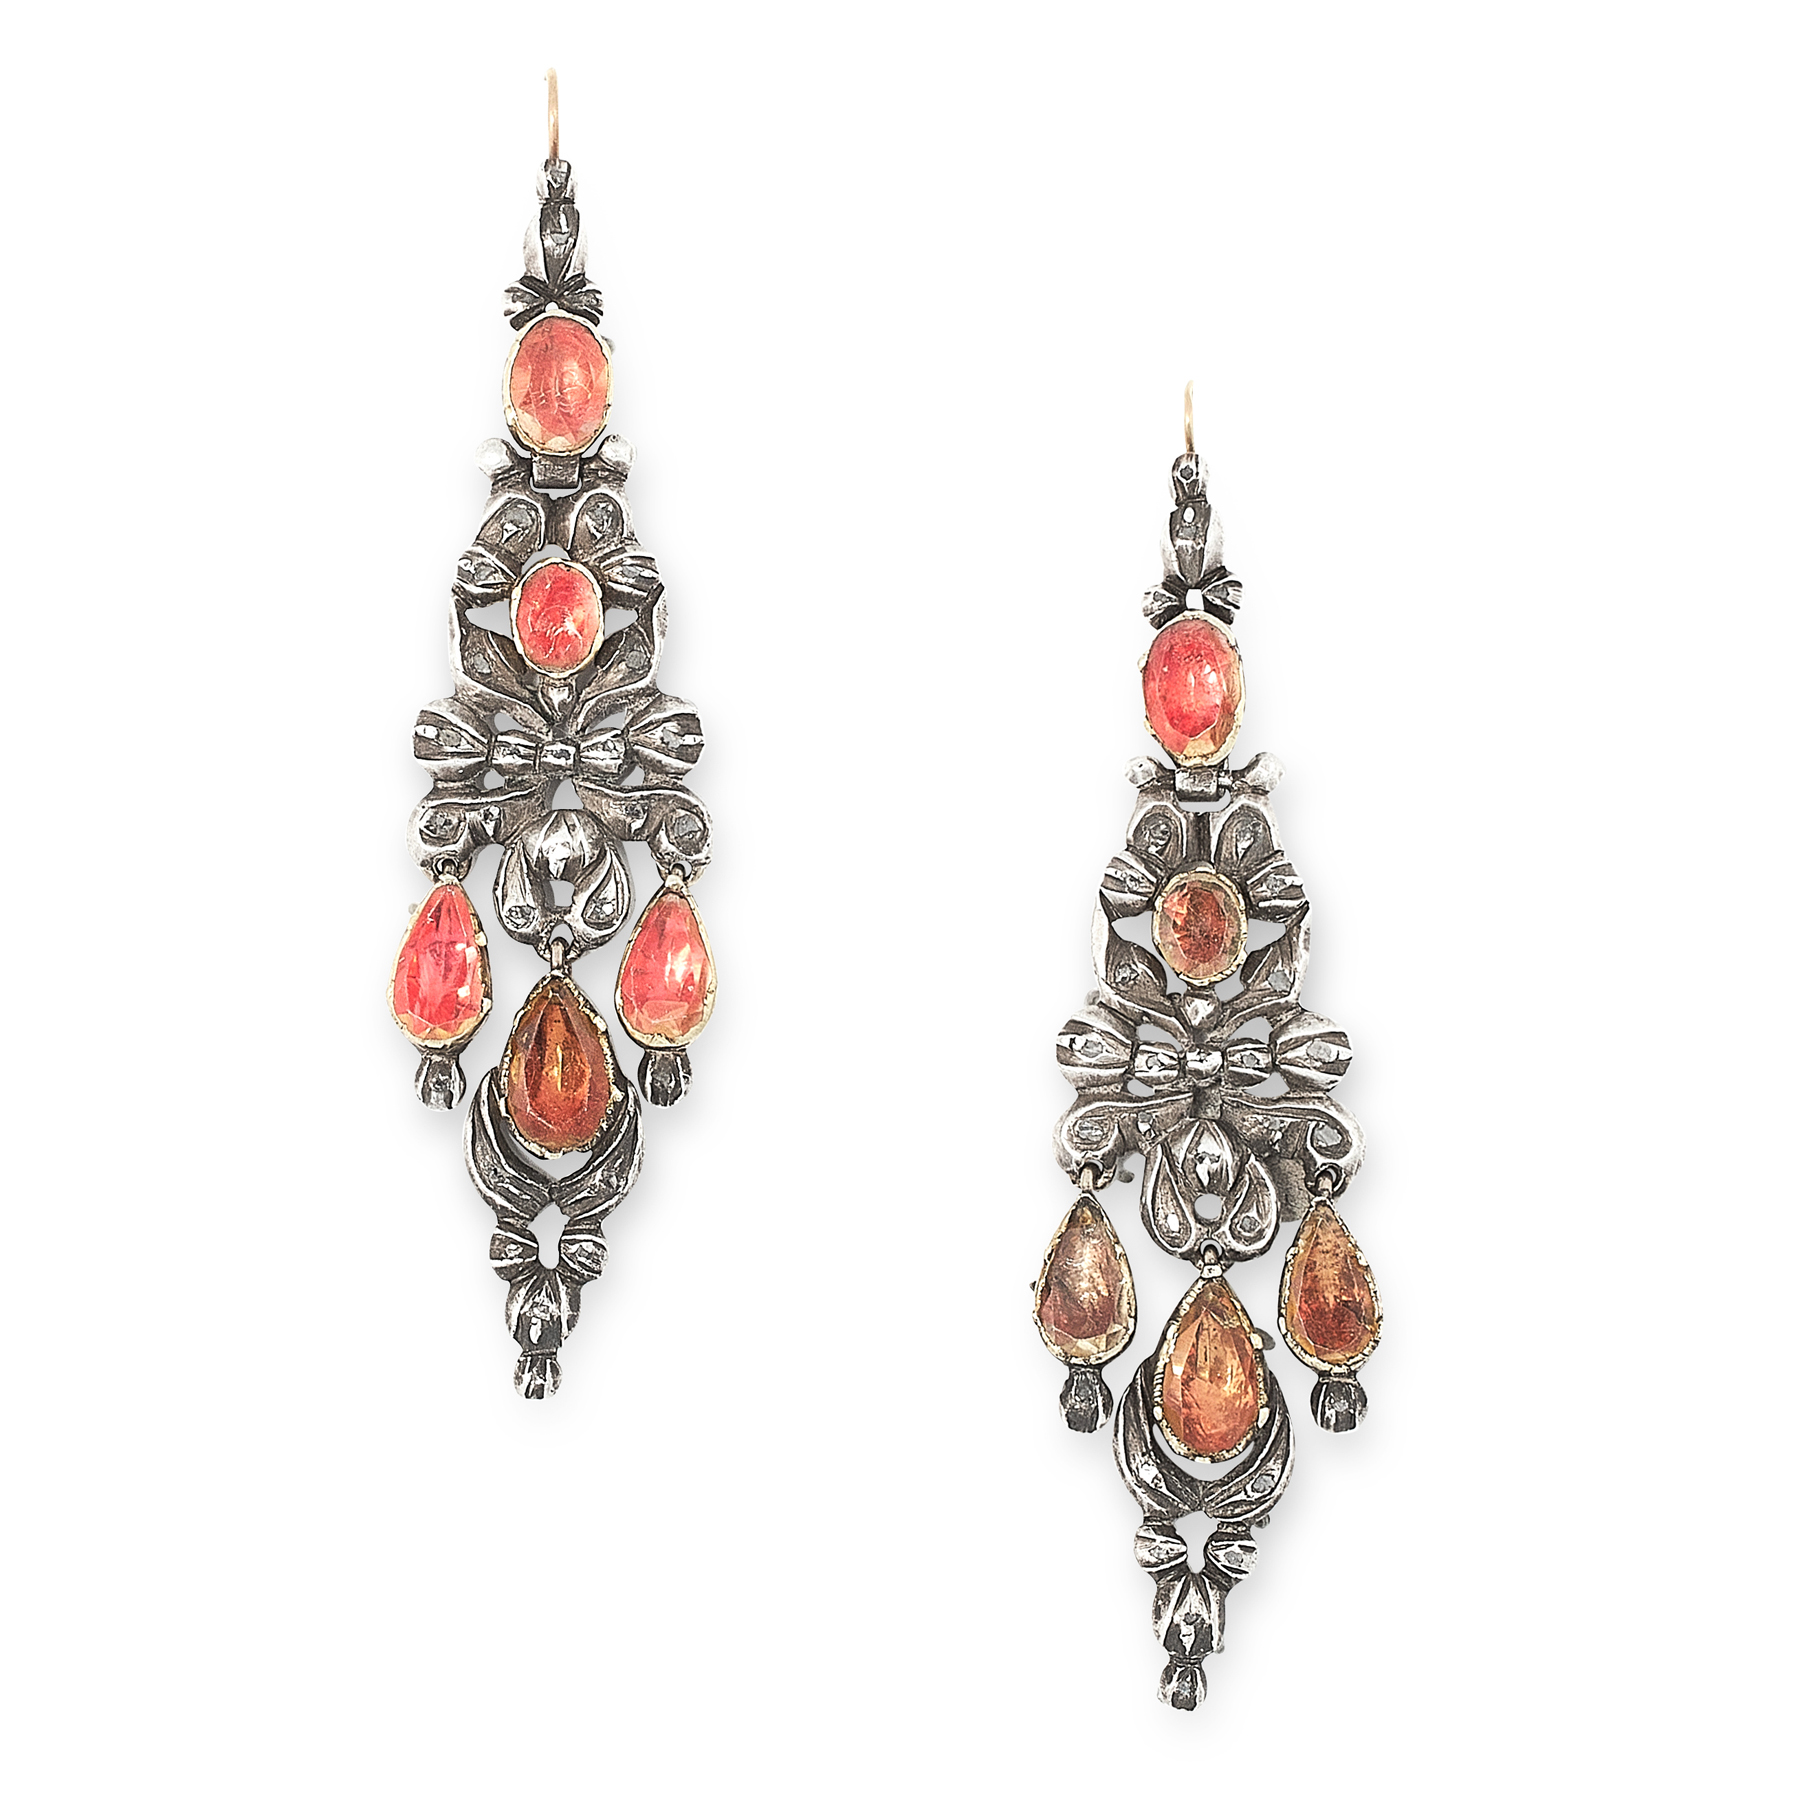 A PAIR OF ANTIQUE TOPAZ AND DIAMOND EARRINGS, SPANISH LATE 18TH CENTURY in silver, the articulated